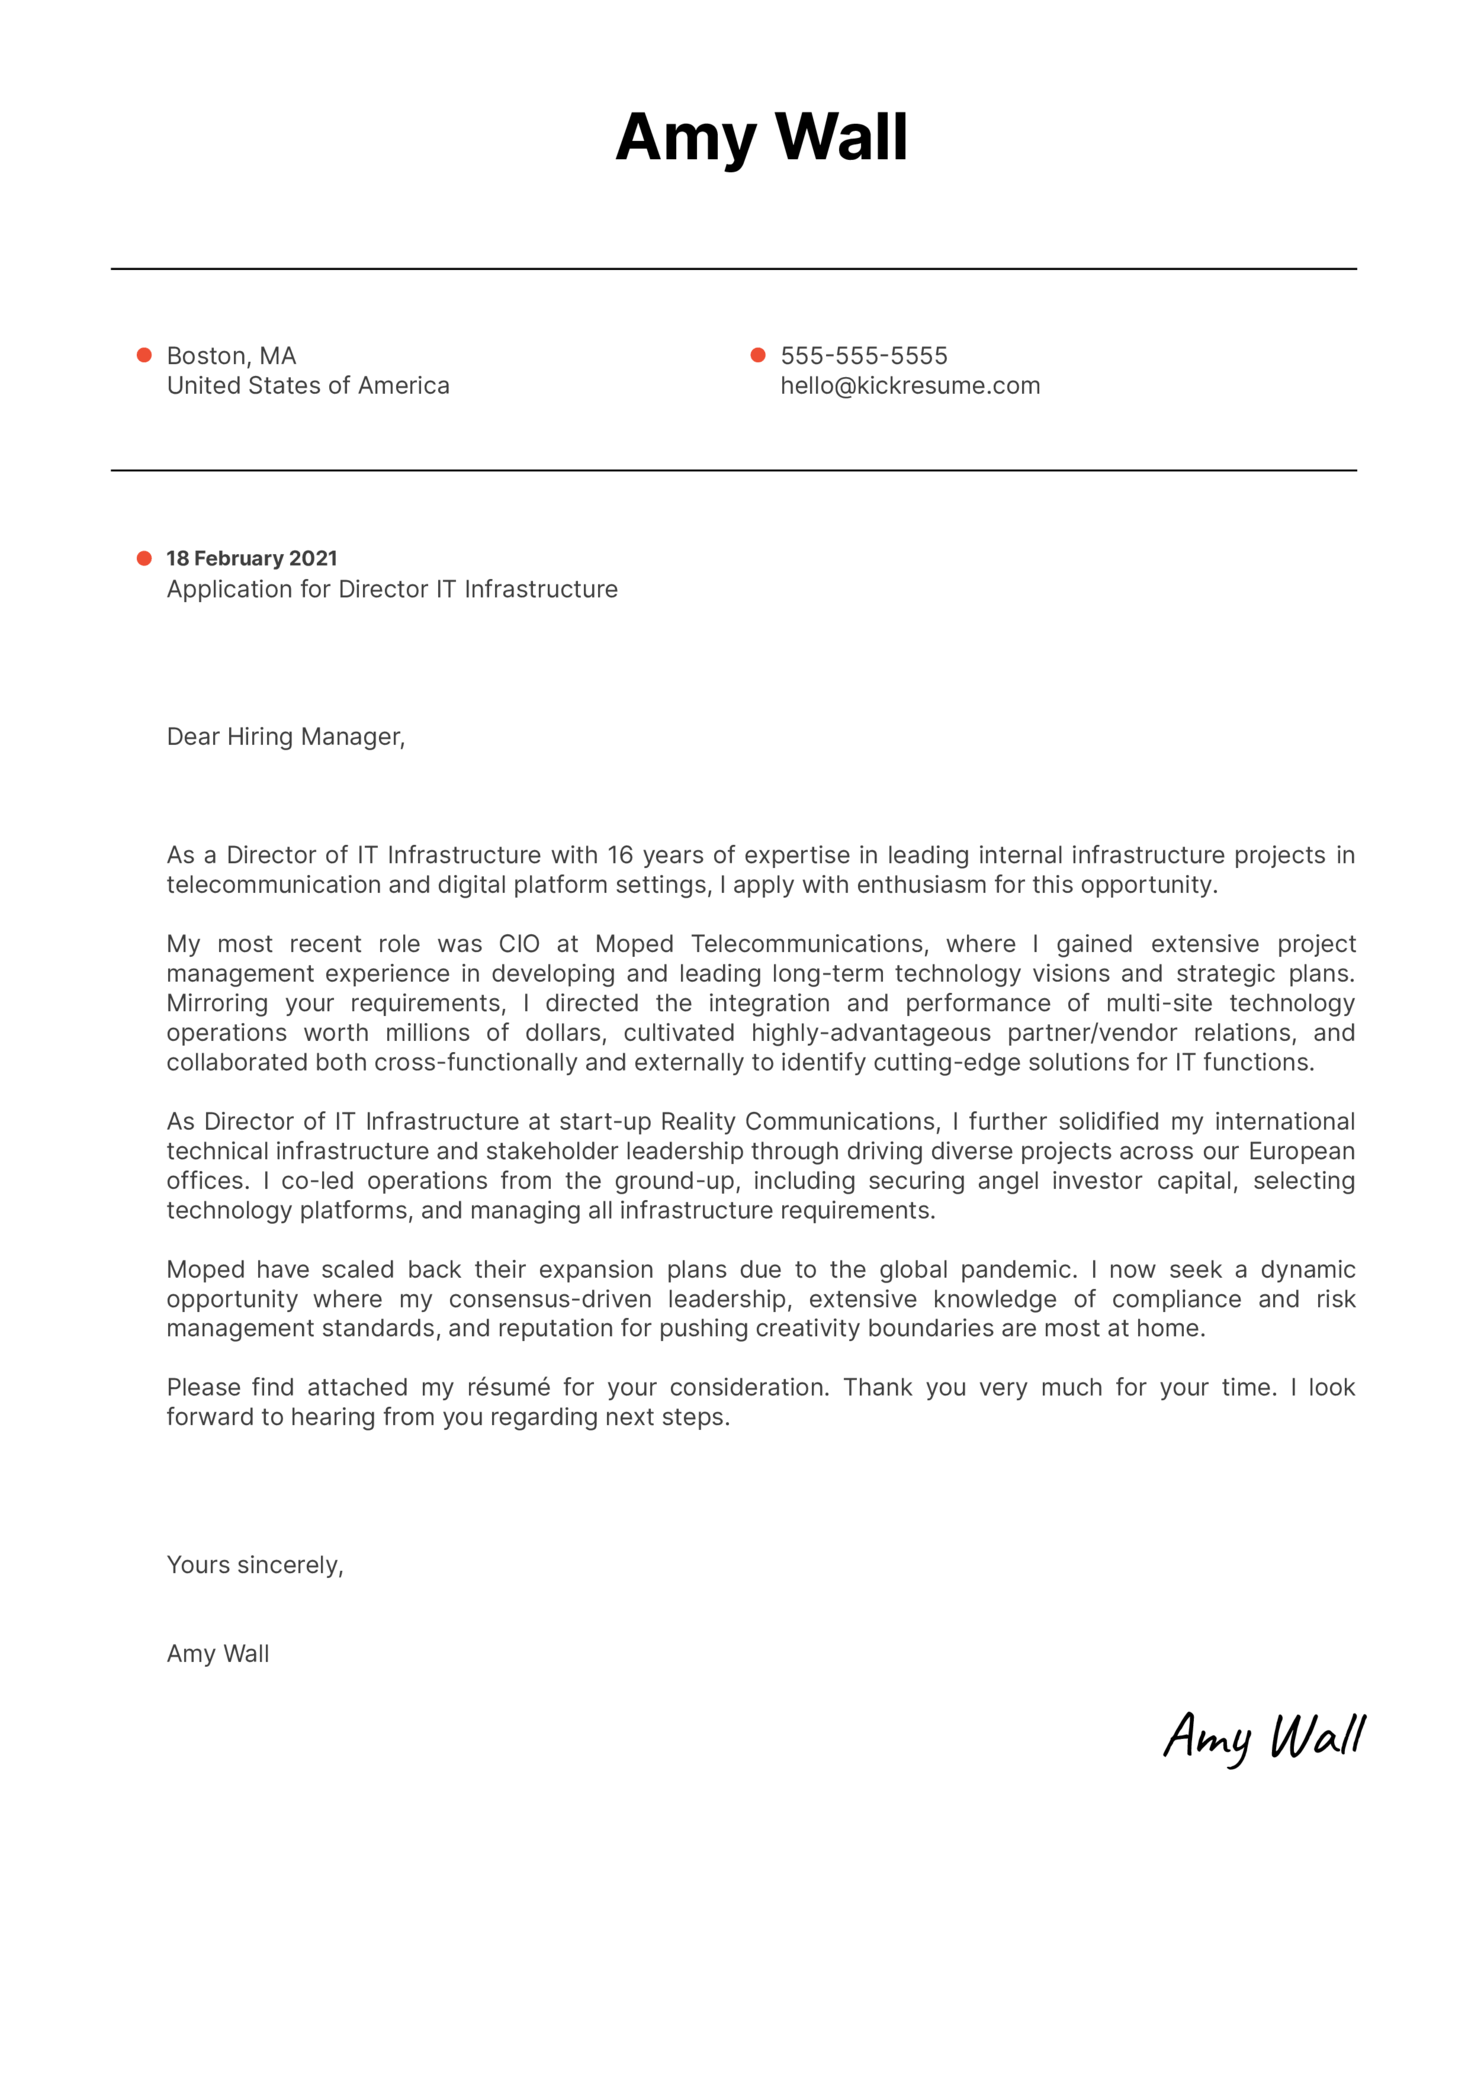 Director IT Infrastructure Cover Letter Sample